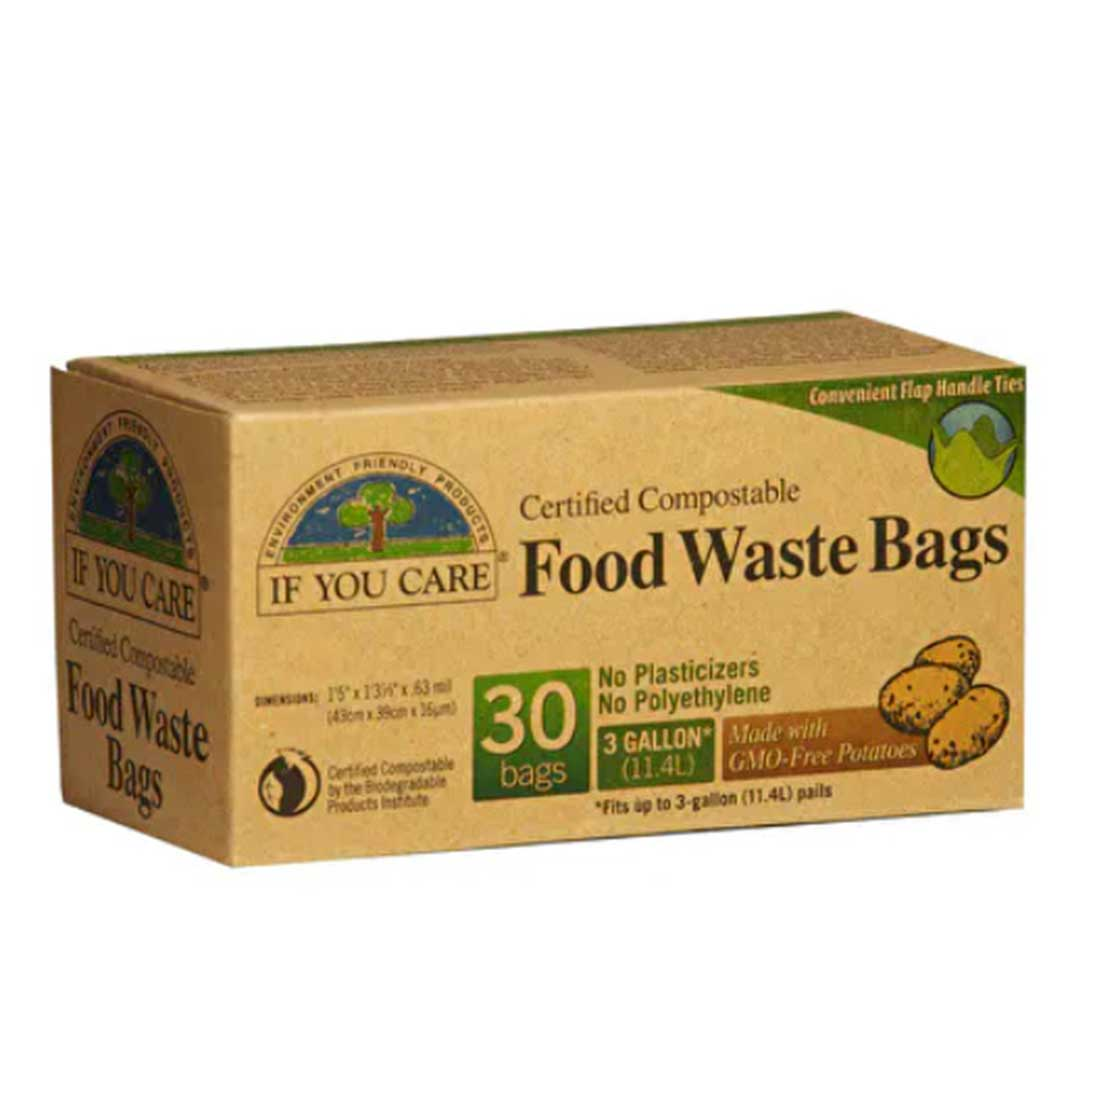 Food Waste Bags (Compostable) by If You Care